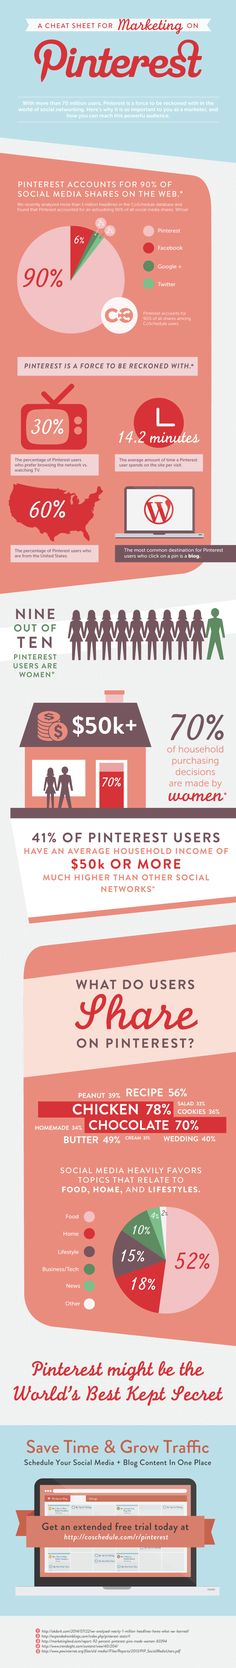 A Cheat Sheet For Marketing On Pinterest [Infographic]